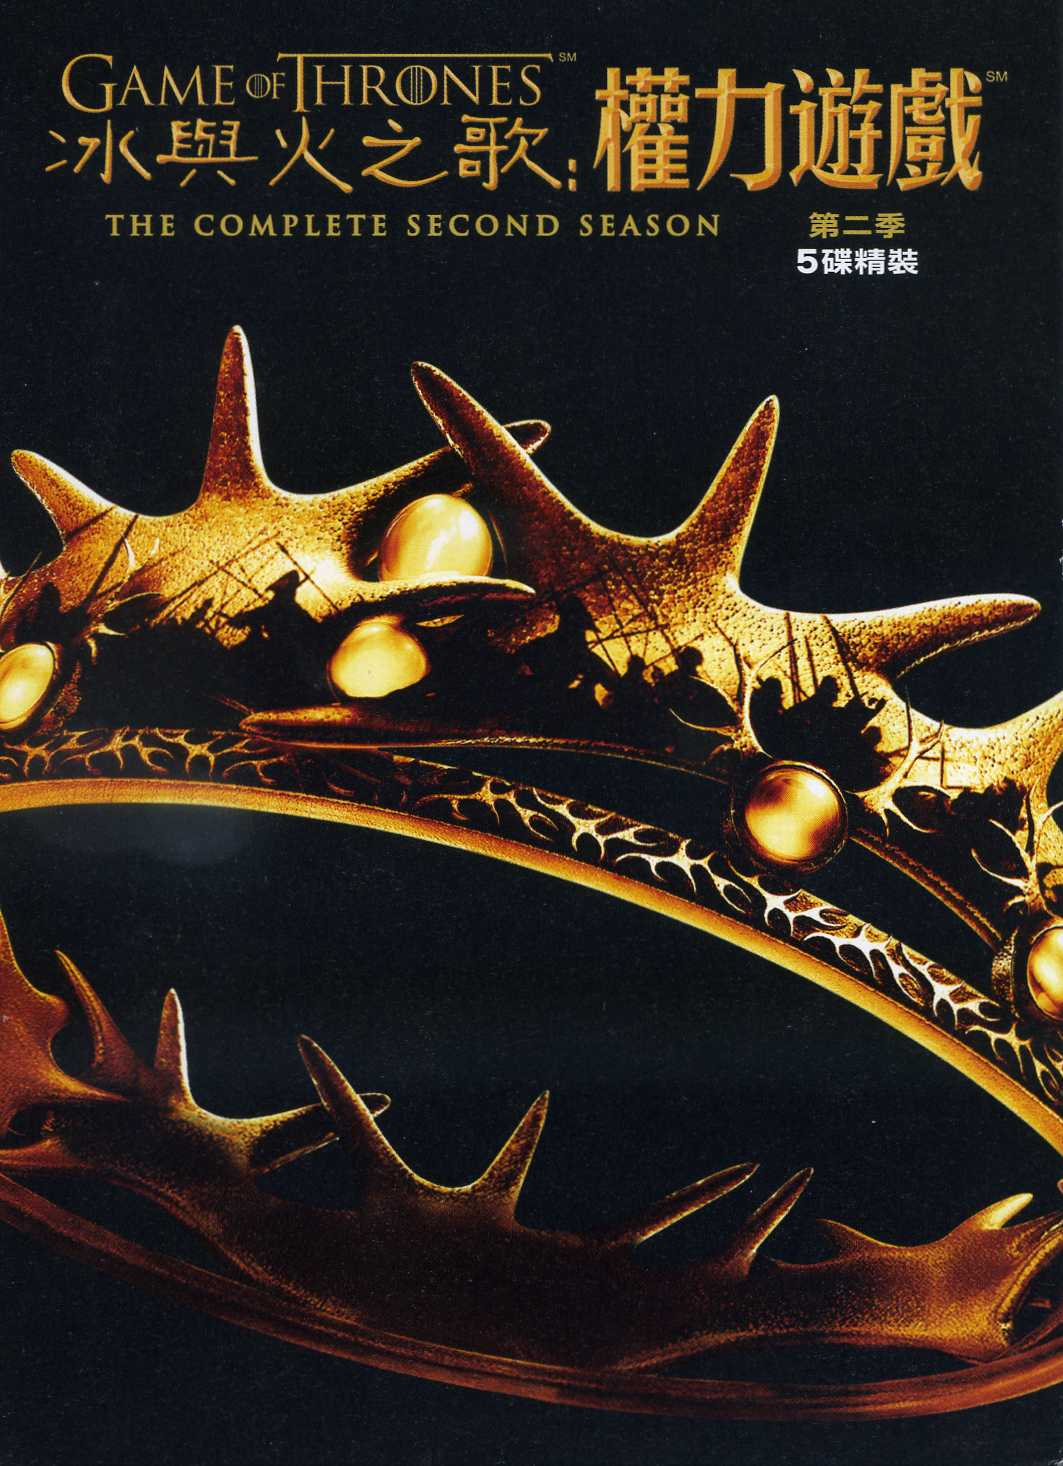 冰與火之歌 權力遊戲. [錄影資料]: Game of thrones: the complete second season